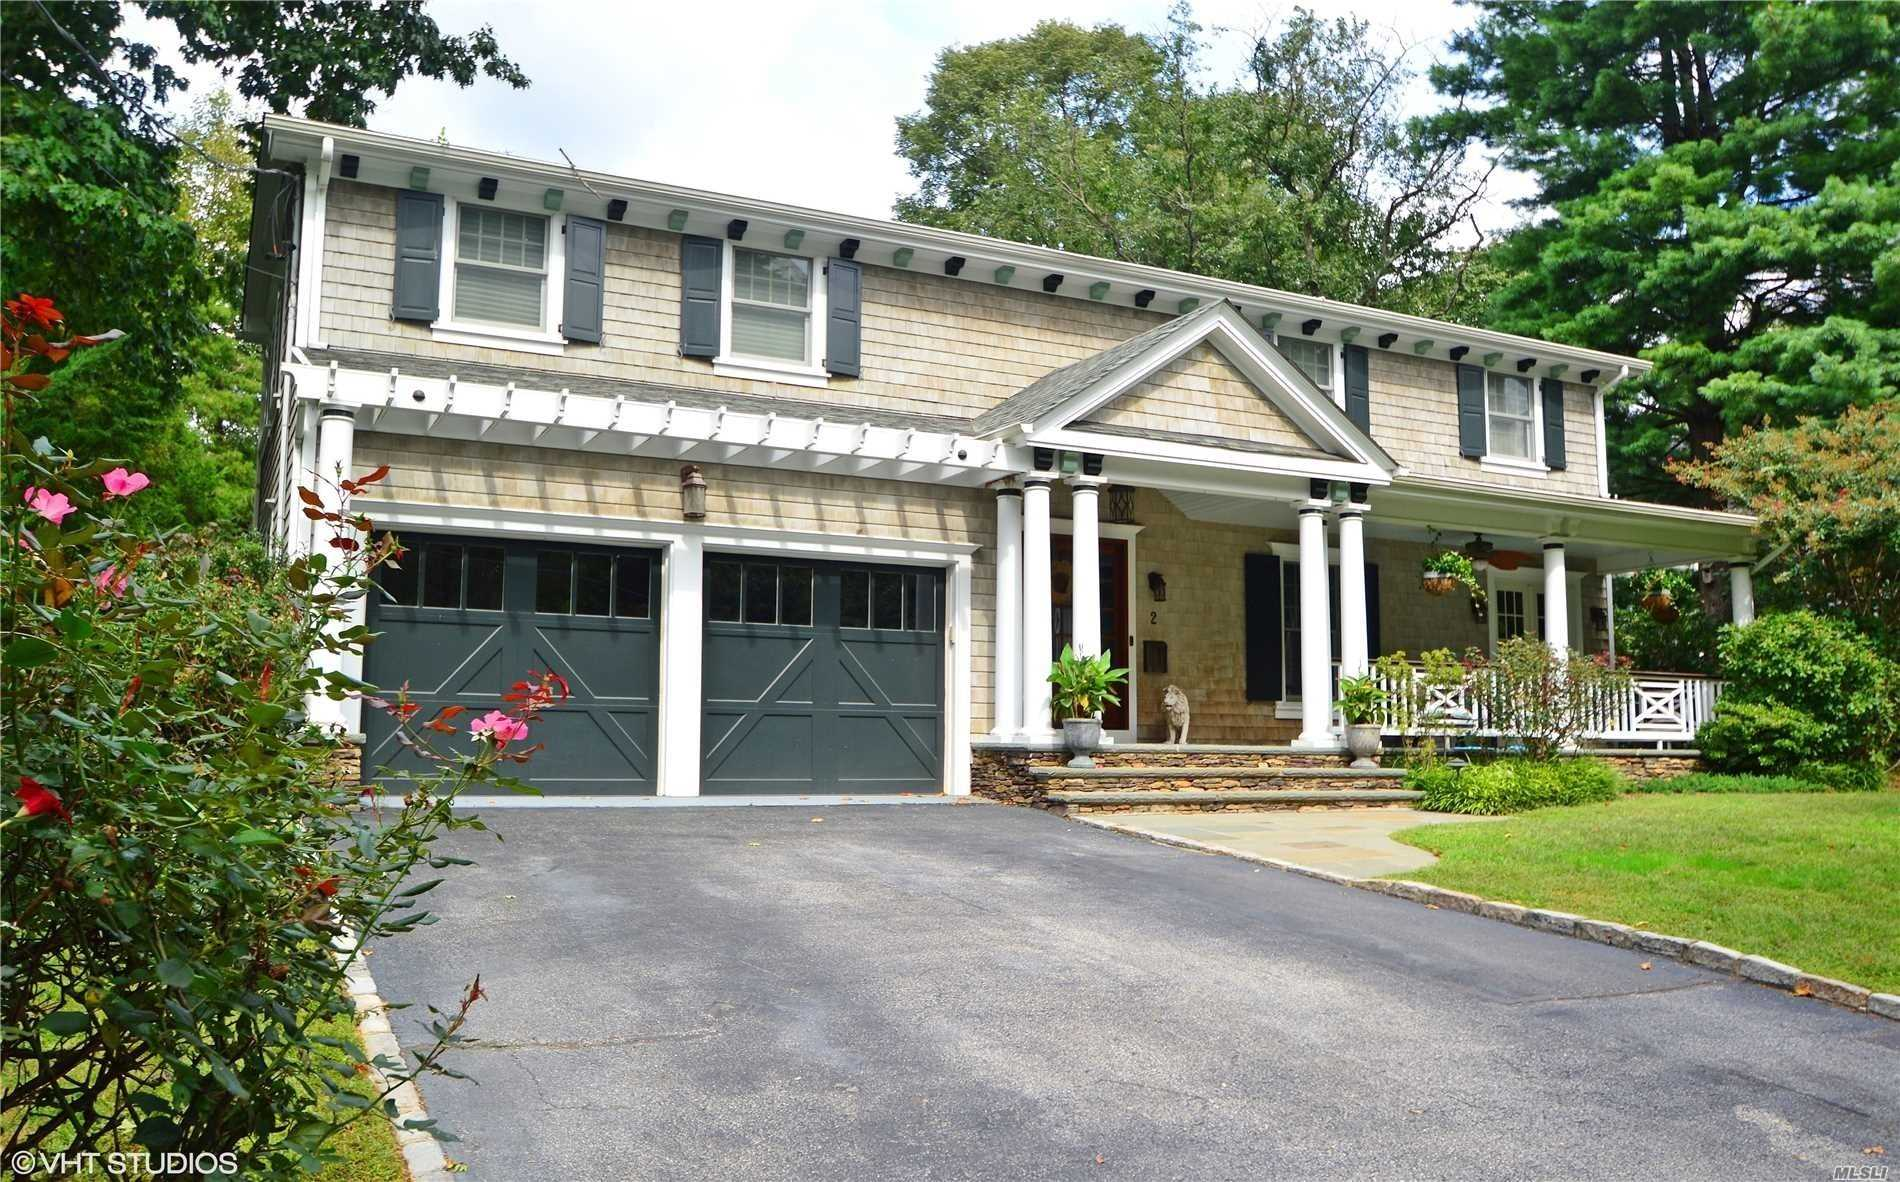 Beautiful Cedar Shingle Colonial On 1/3 Of A Acre In Most Desirable Sea Cliff Location.Front And Back Porches, Extensive Upscale Landscaping & Masonry Work.Salt Water Pool With New Liner.Premium Interior Finishes.Lodge Like Den W/Rustic Stone Fireplace And Vintage Eat In Kitchen.Formal Dining Room And Living Room.Luxurious Master Suite.Large Fully Finished Basement, Cac, In Ground Sprinklers.